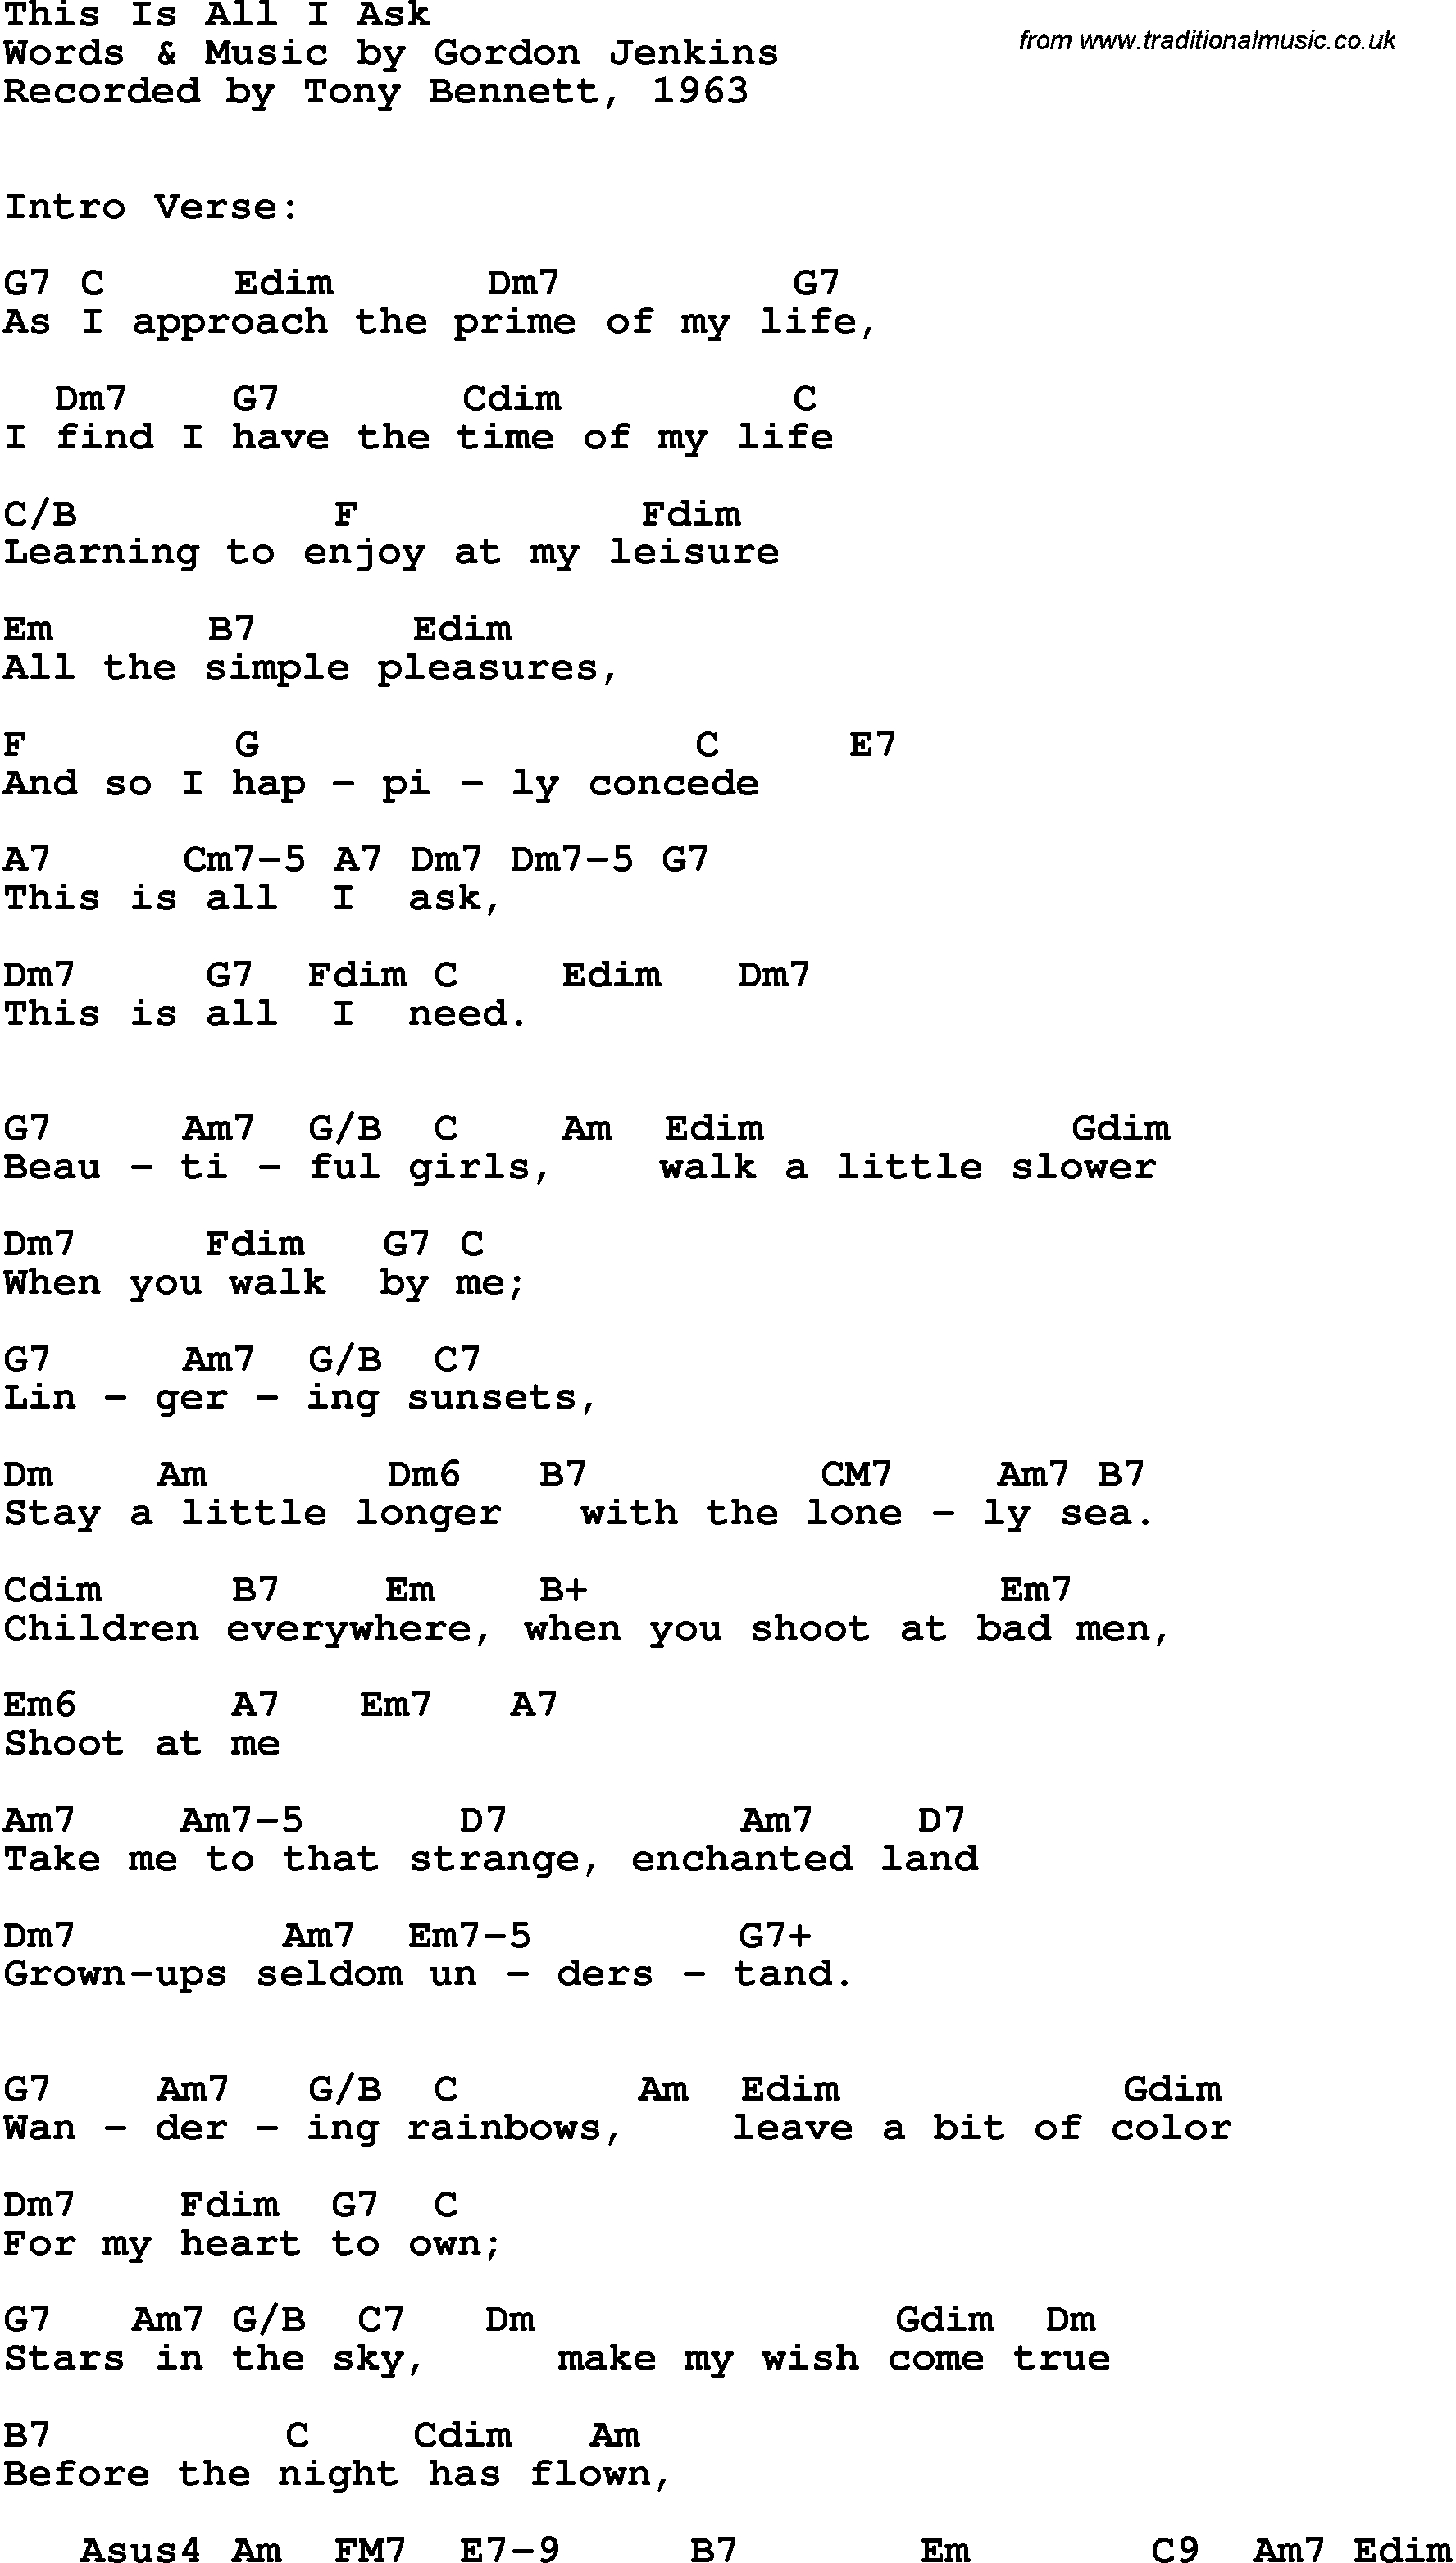 All I Ask Chords Song Lyrics With Guitar Chords For This Is All I Ask Tony Bennett